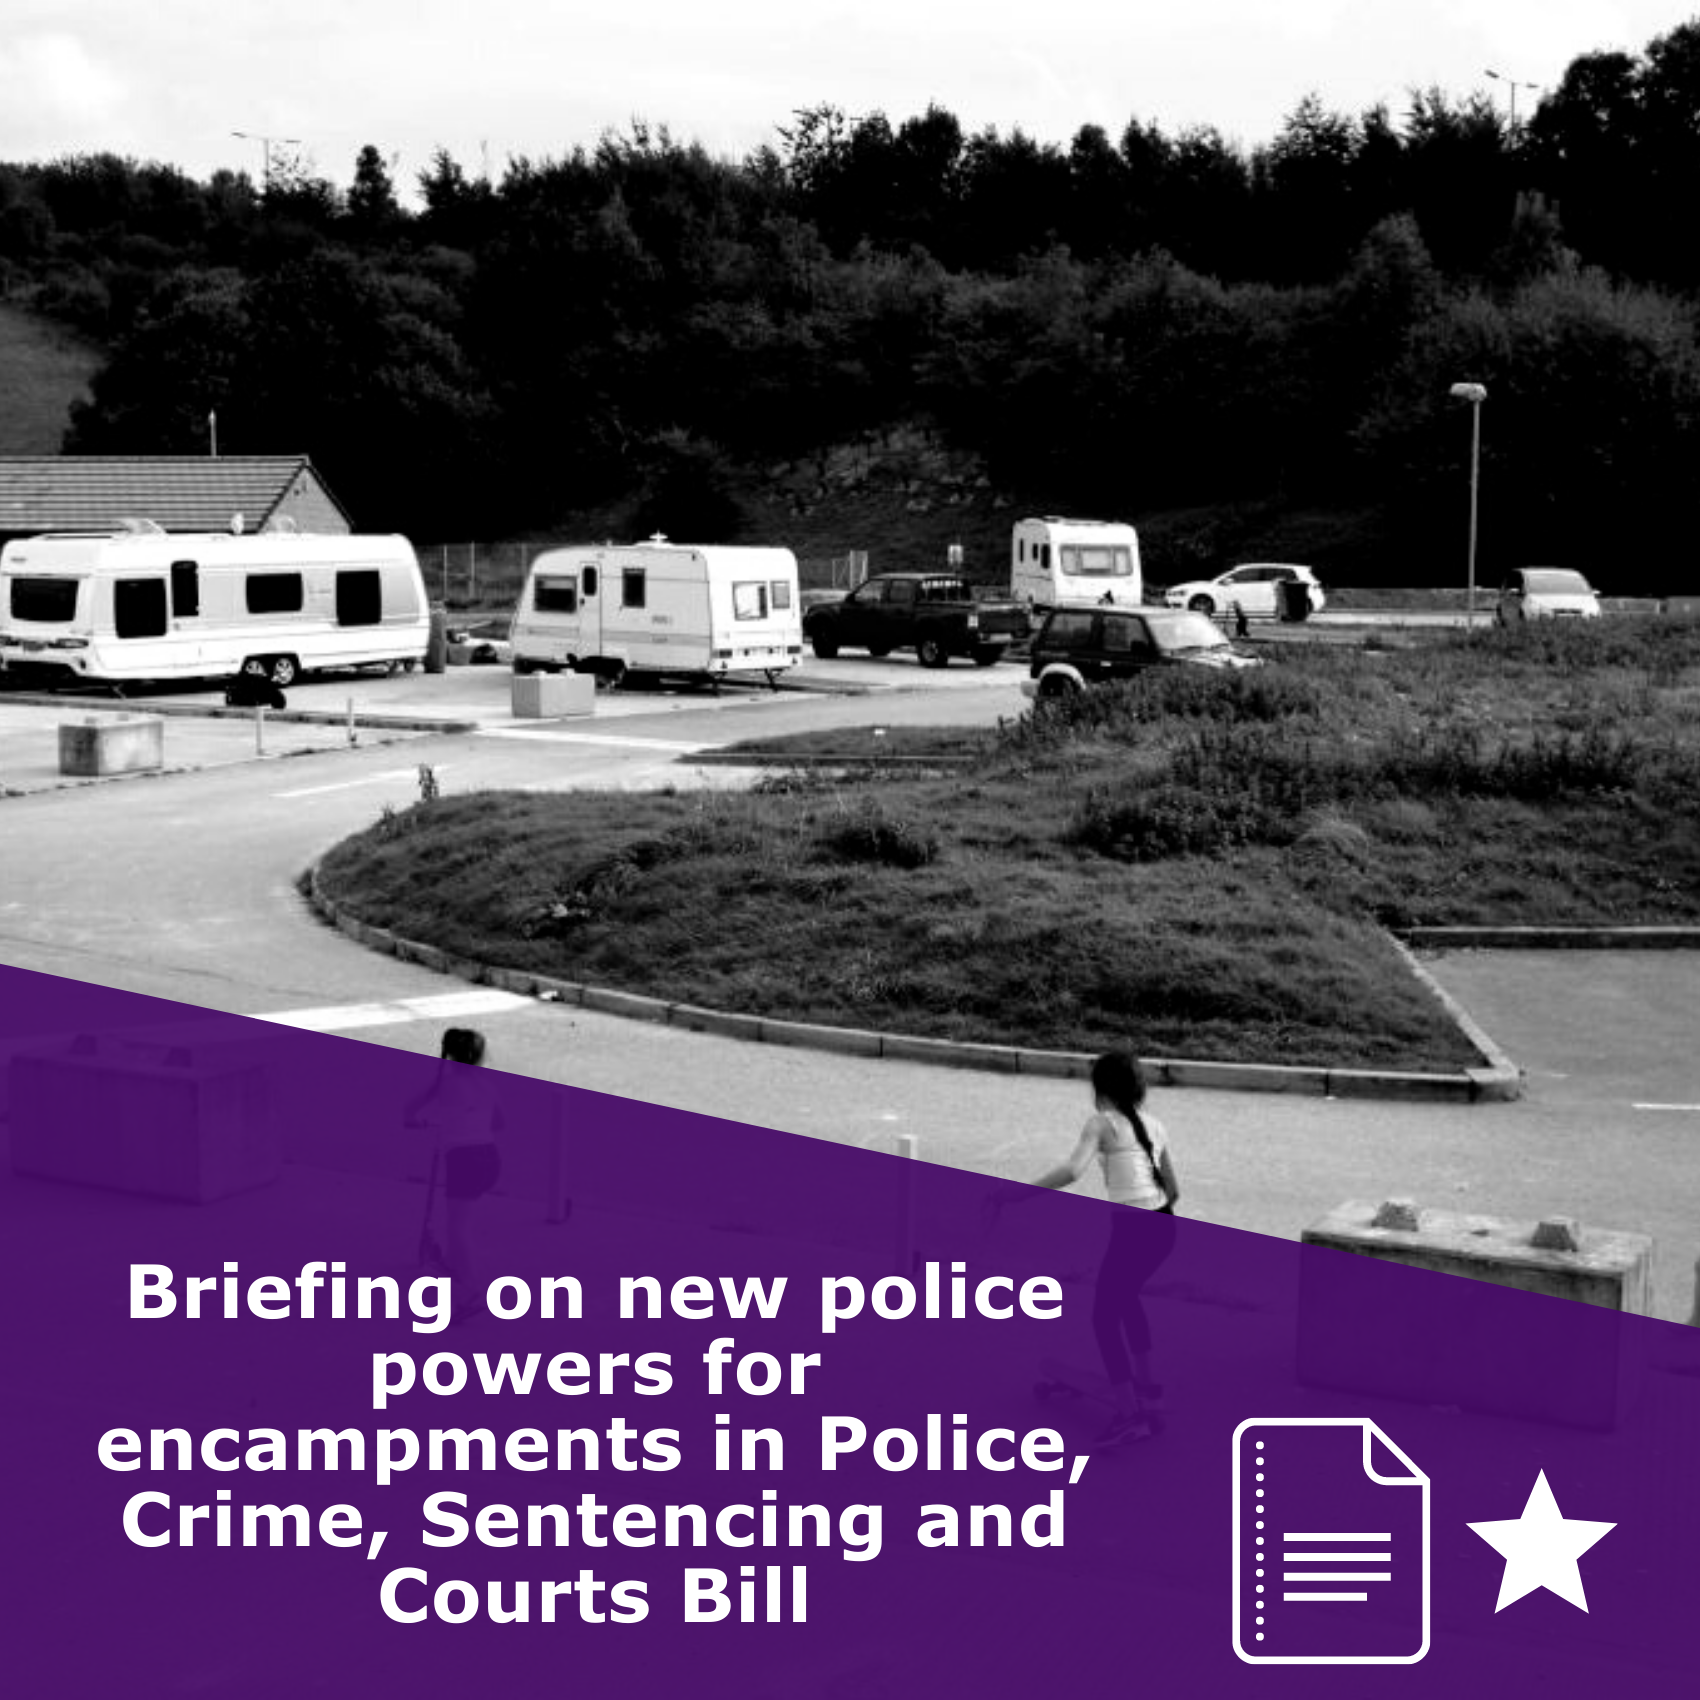 Briefing on new police powers for encampments in Police, Crime, Sentencing and Courts Bill, article rated 1 star